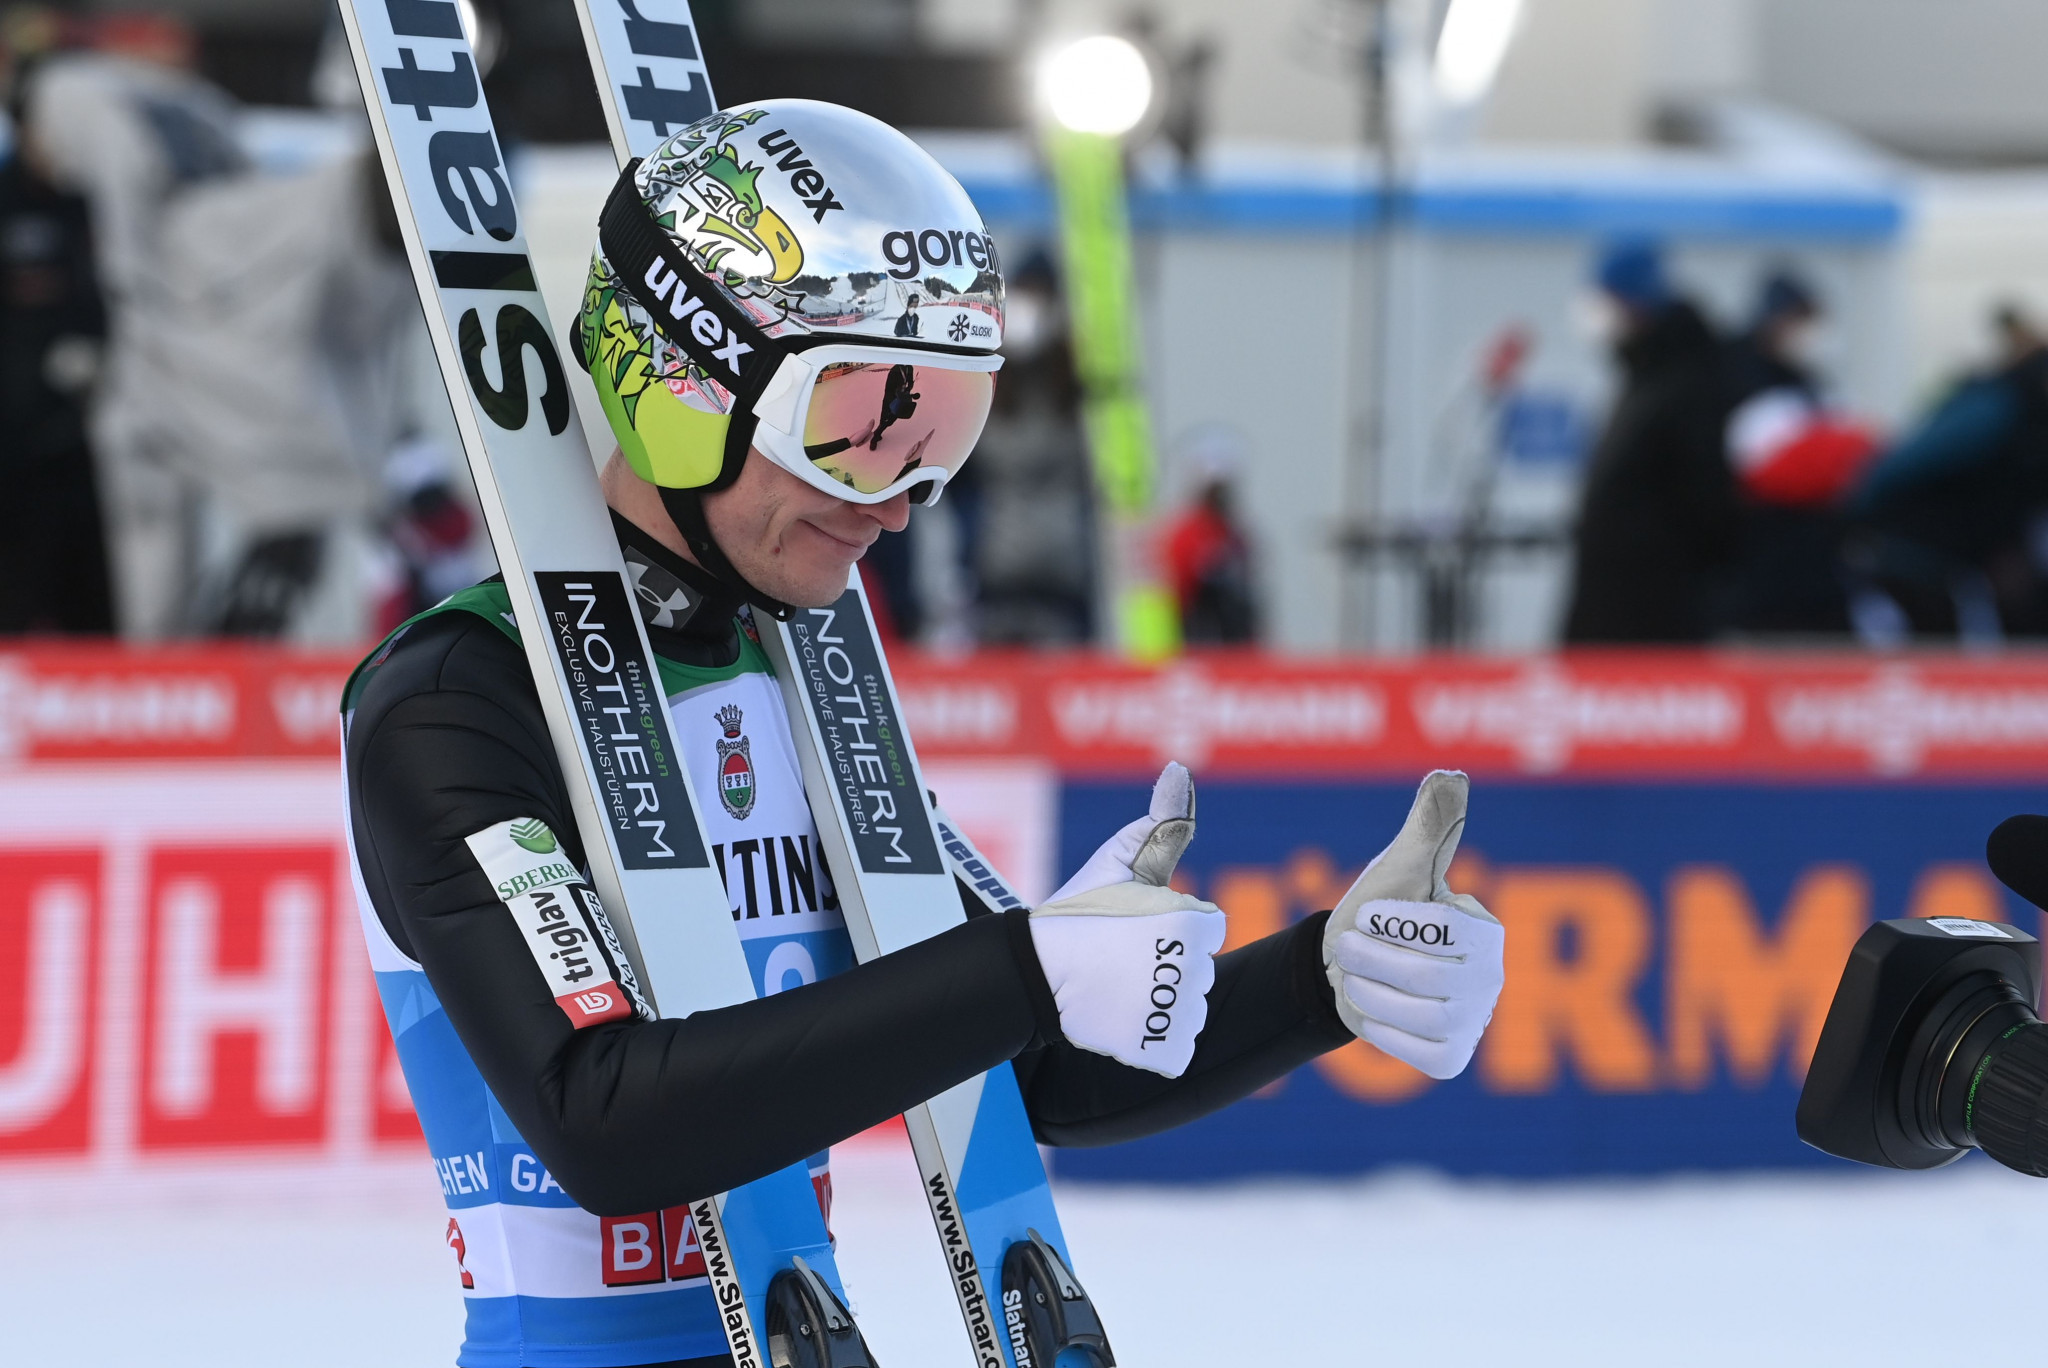 Lanišek ends year on high with Ski Jumping World Cup qualification joy in Germany